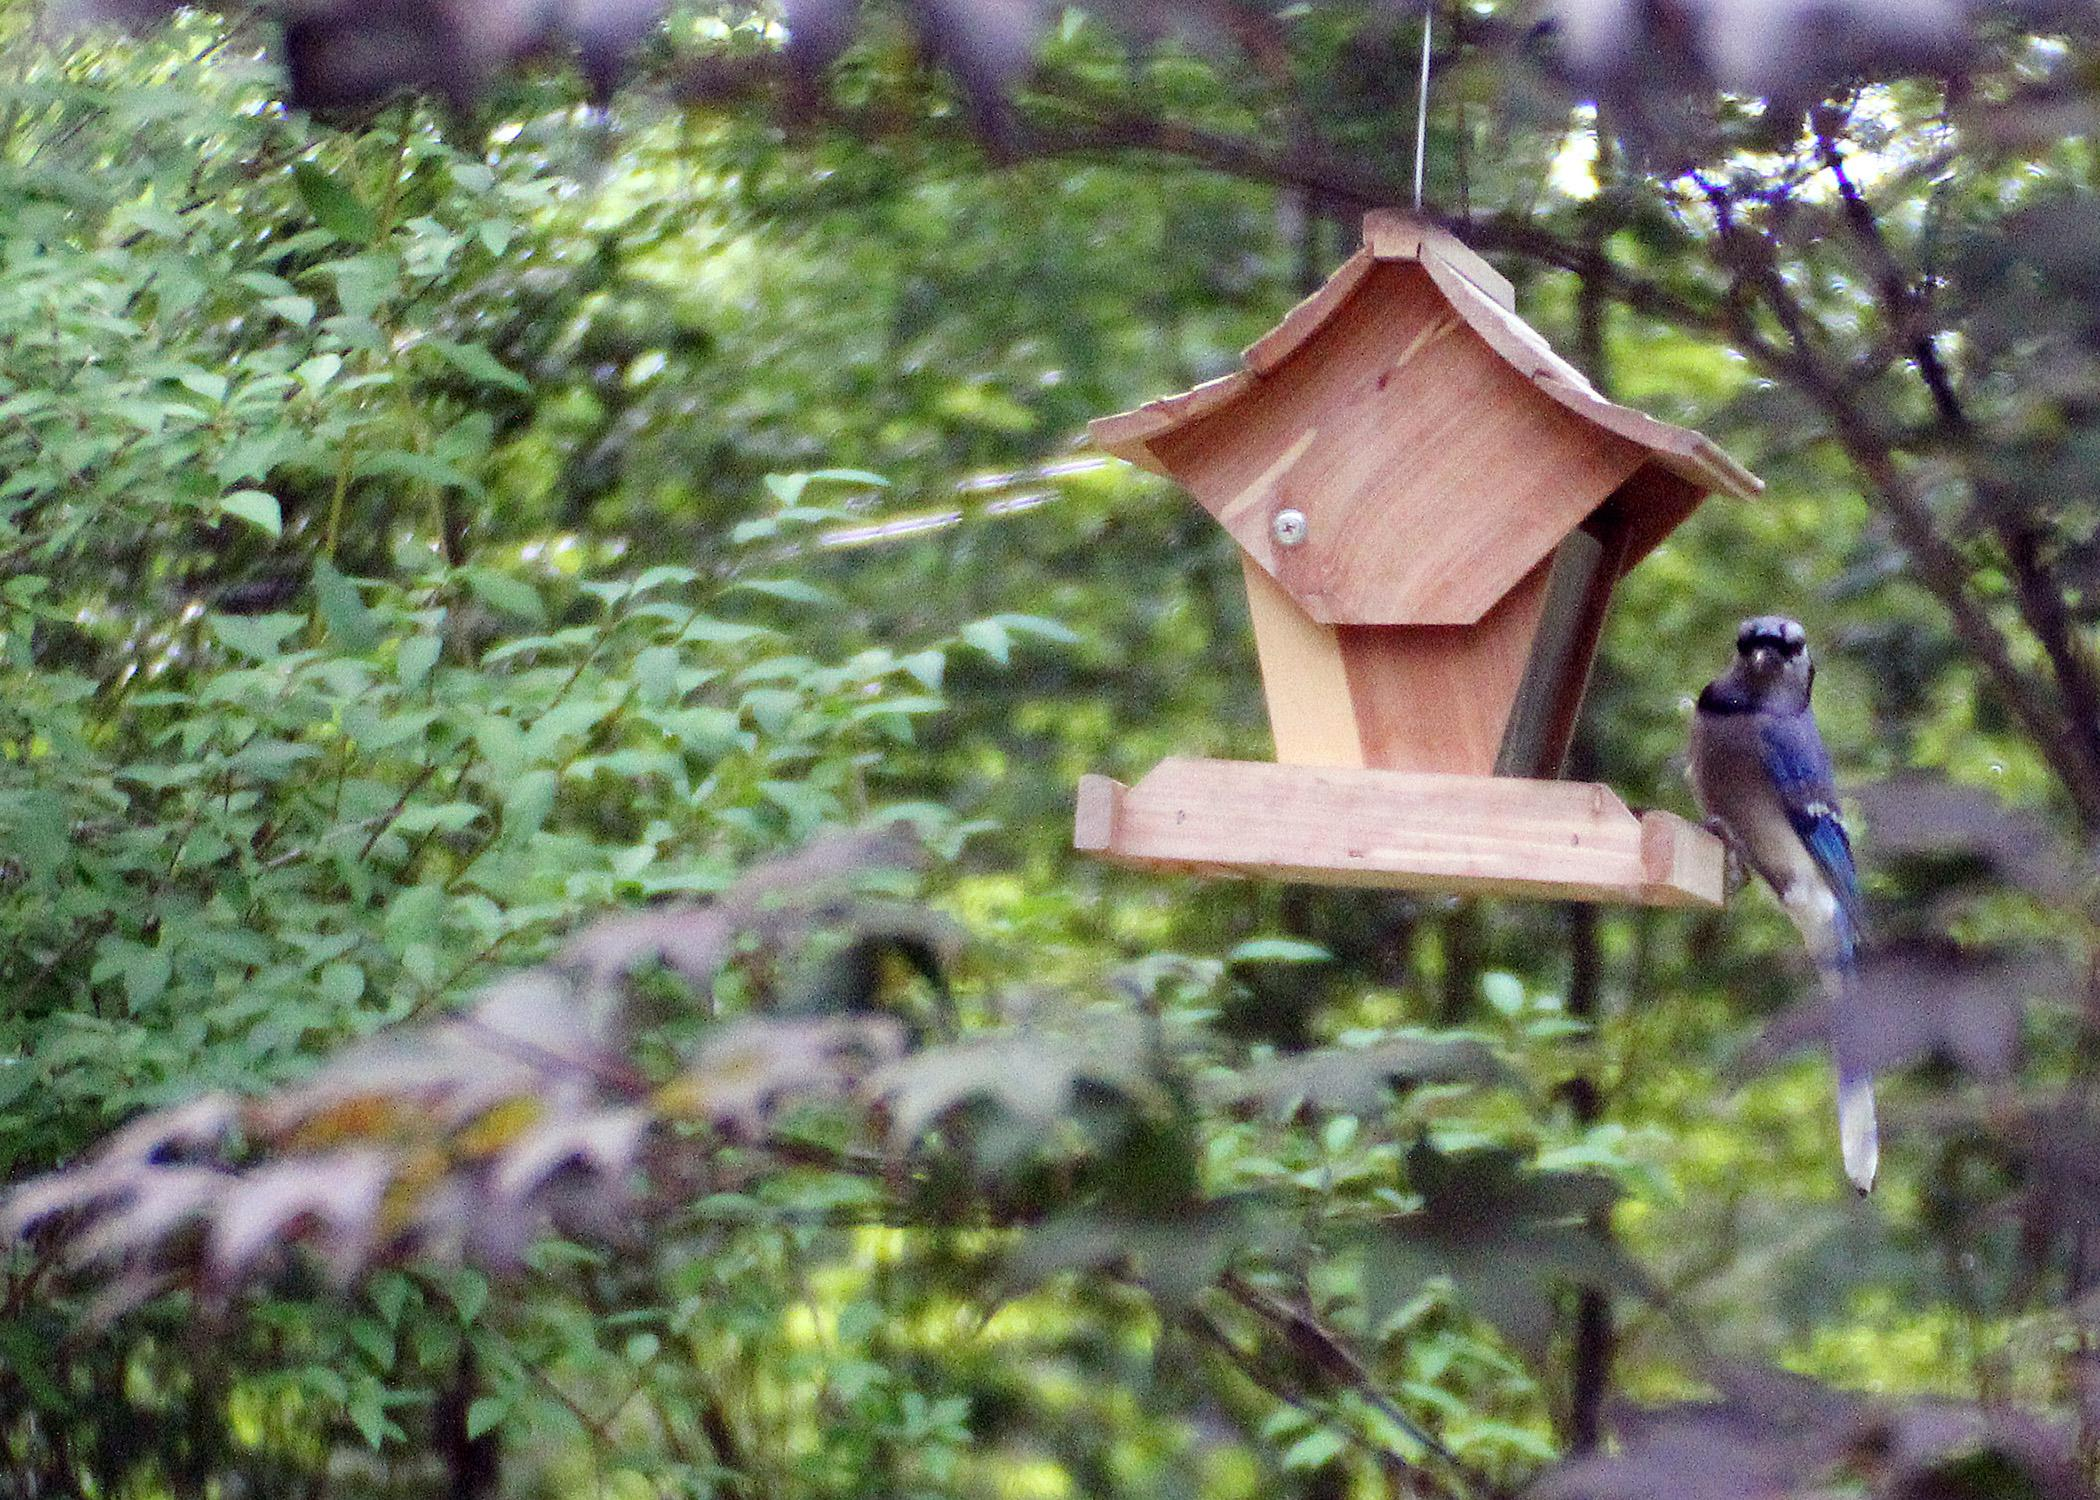 Consistently providing nutritious seeds and nuts to songbirds in the wintertime can offer humans a closer view of these wild animals. (Photo by Marina Denny)